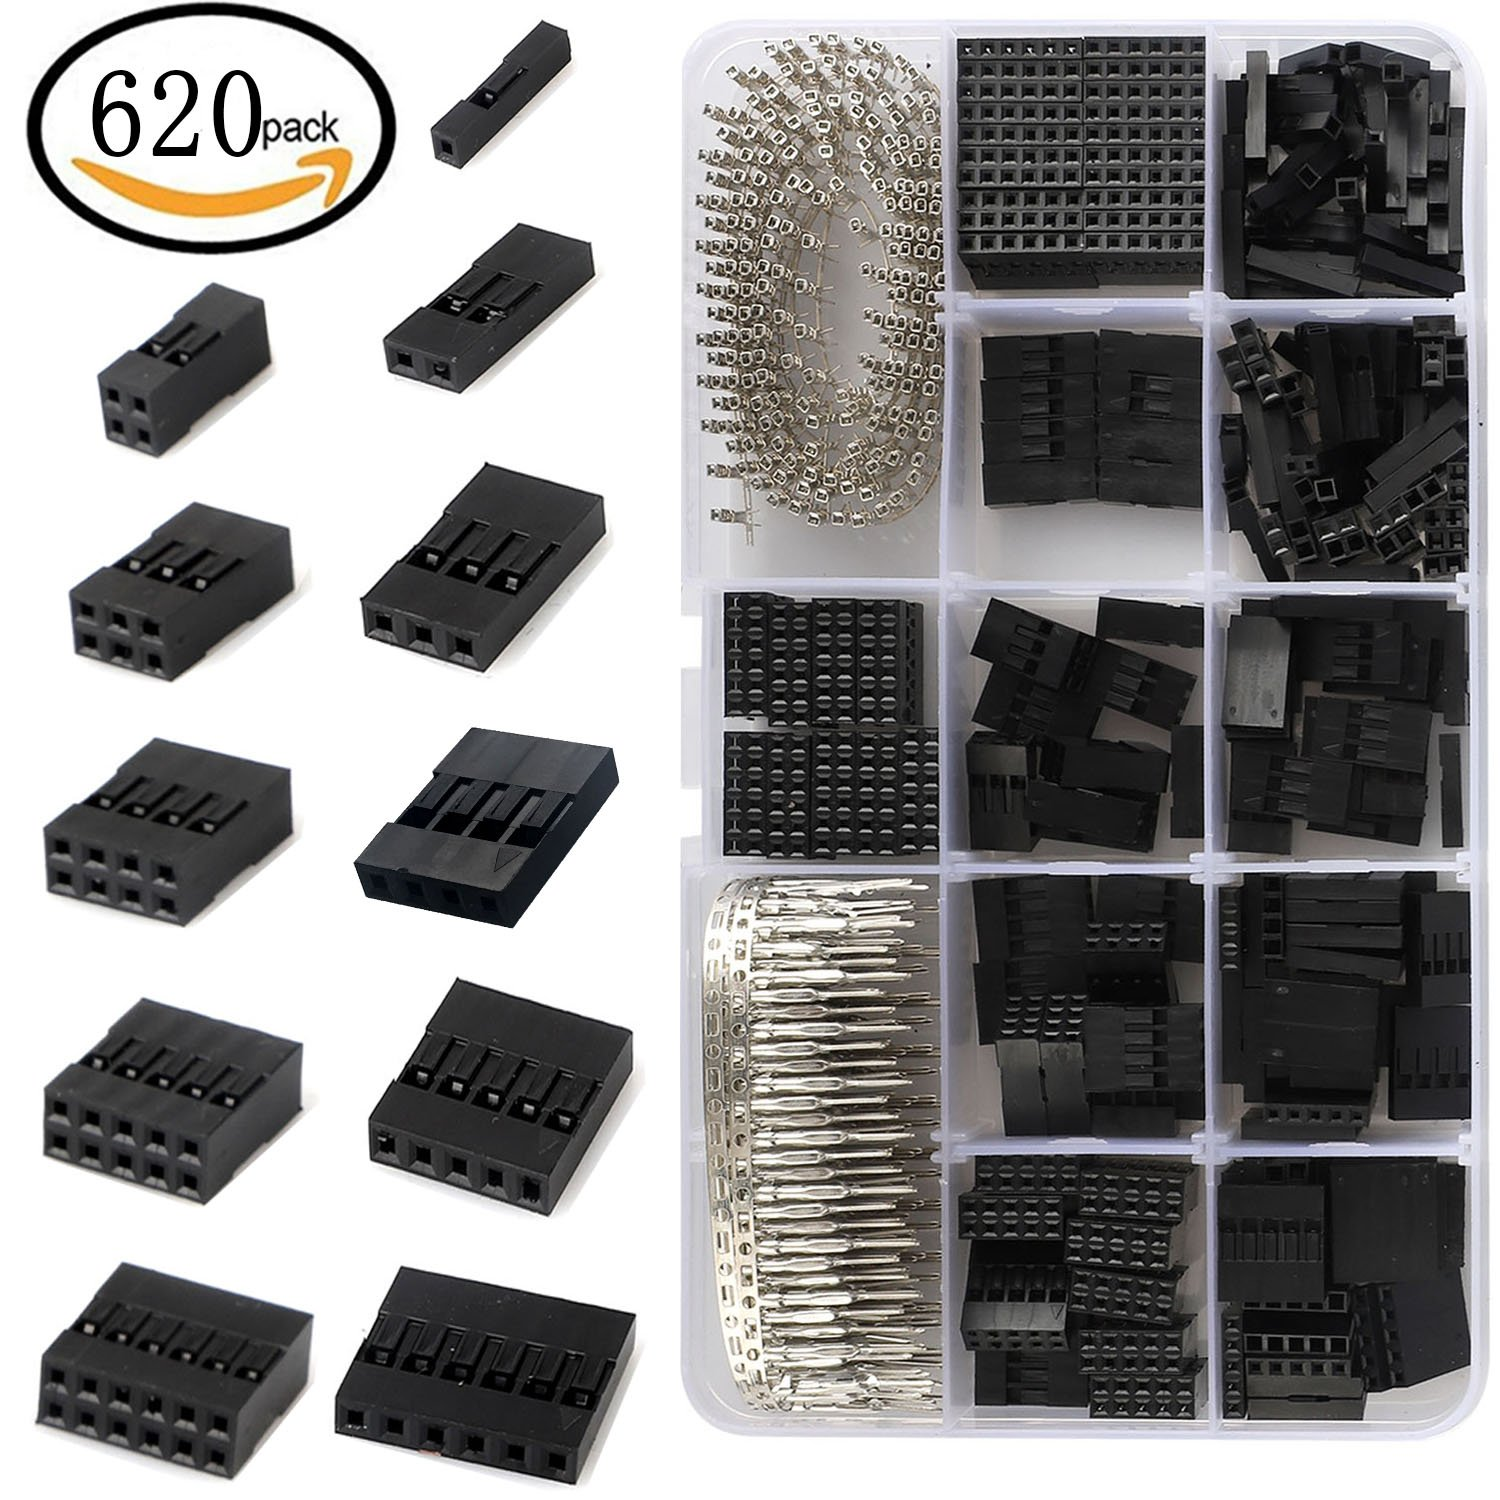 620 PCS 2.54mm Pitch JST SM - 1/2/3/4/5/6 Plug Housing Connector Pitch Dupont Connector Male Female Crimp Pins Assortment Kit